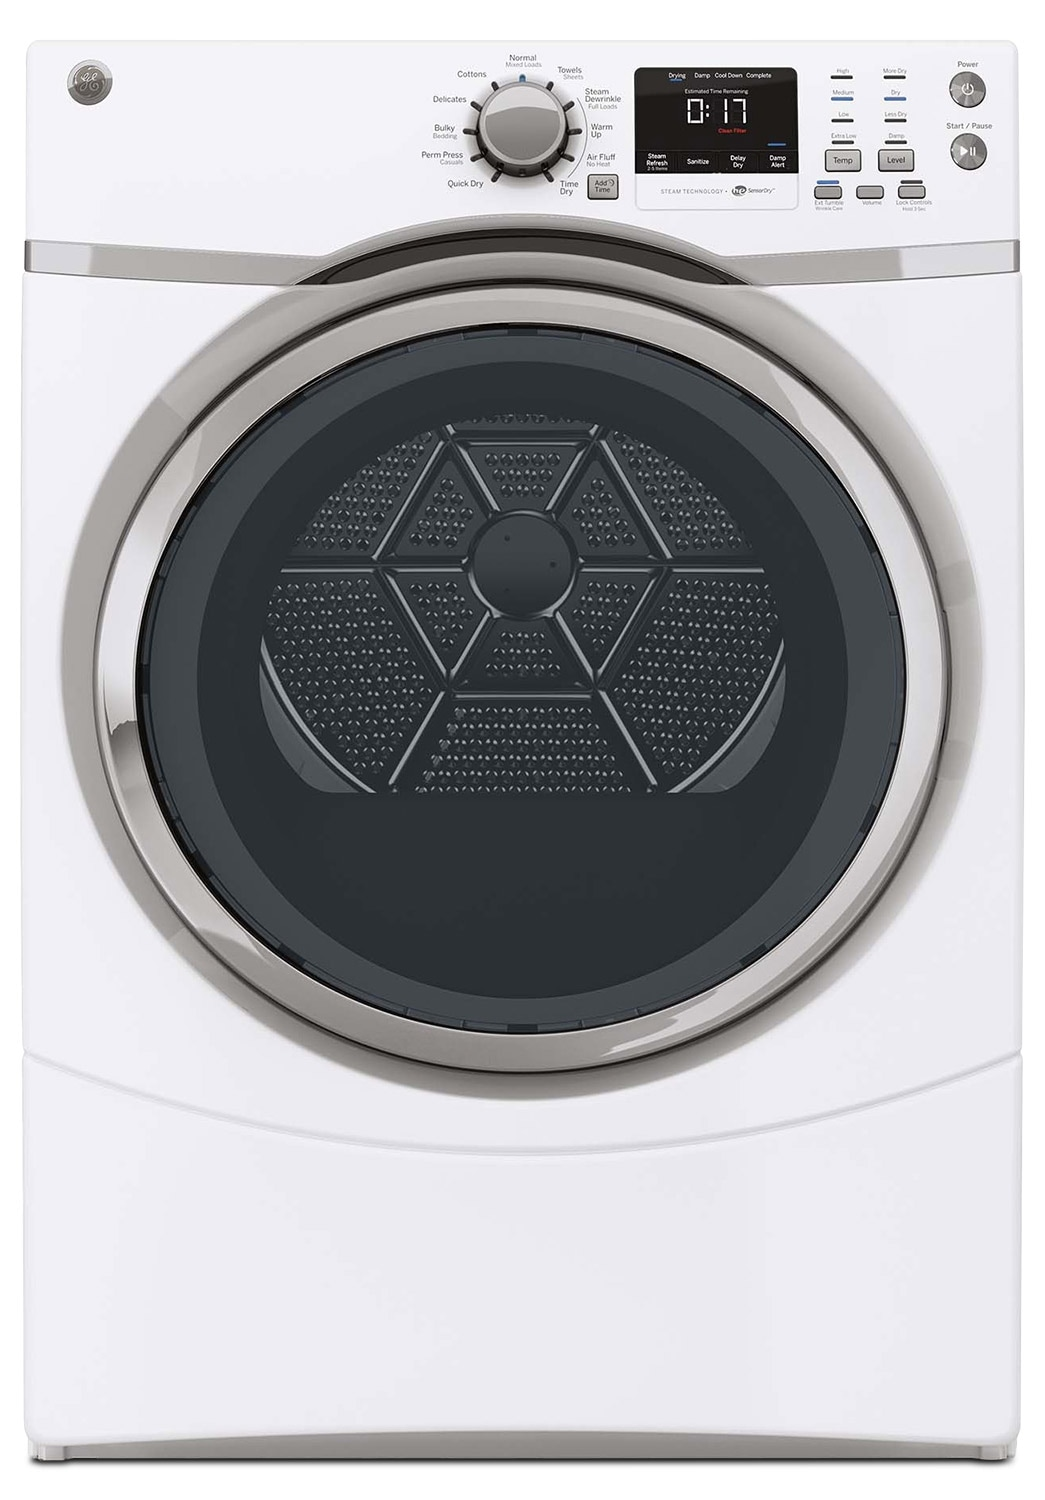 Washers and Dryers - GE White Gas Dryer (7.5 Cu. Ft.) - GFMS170GHWW